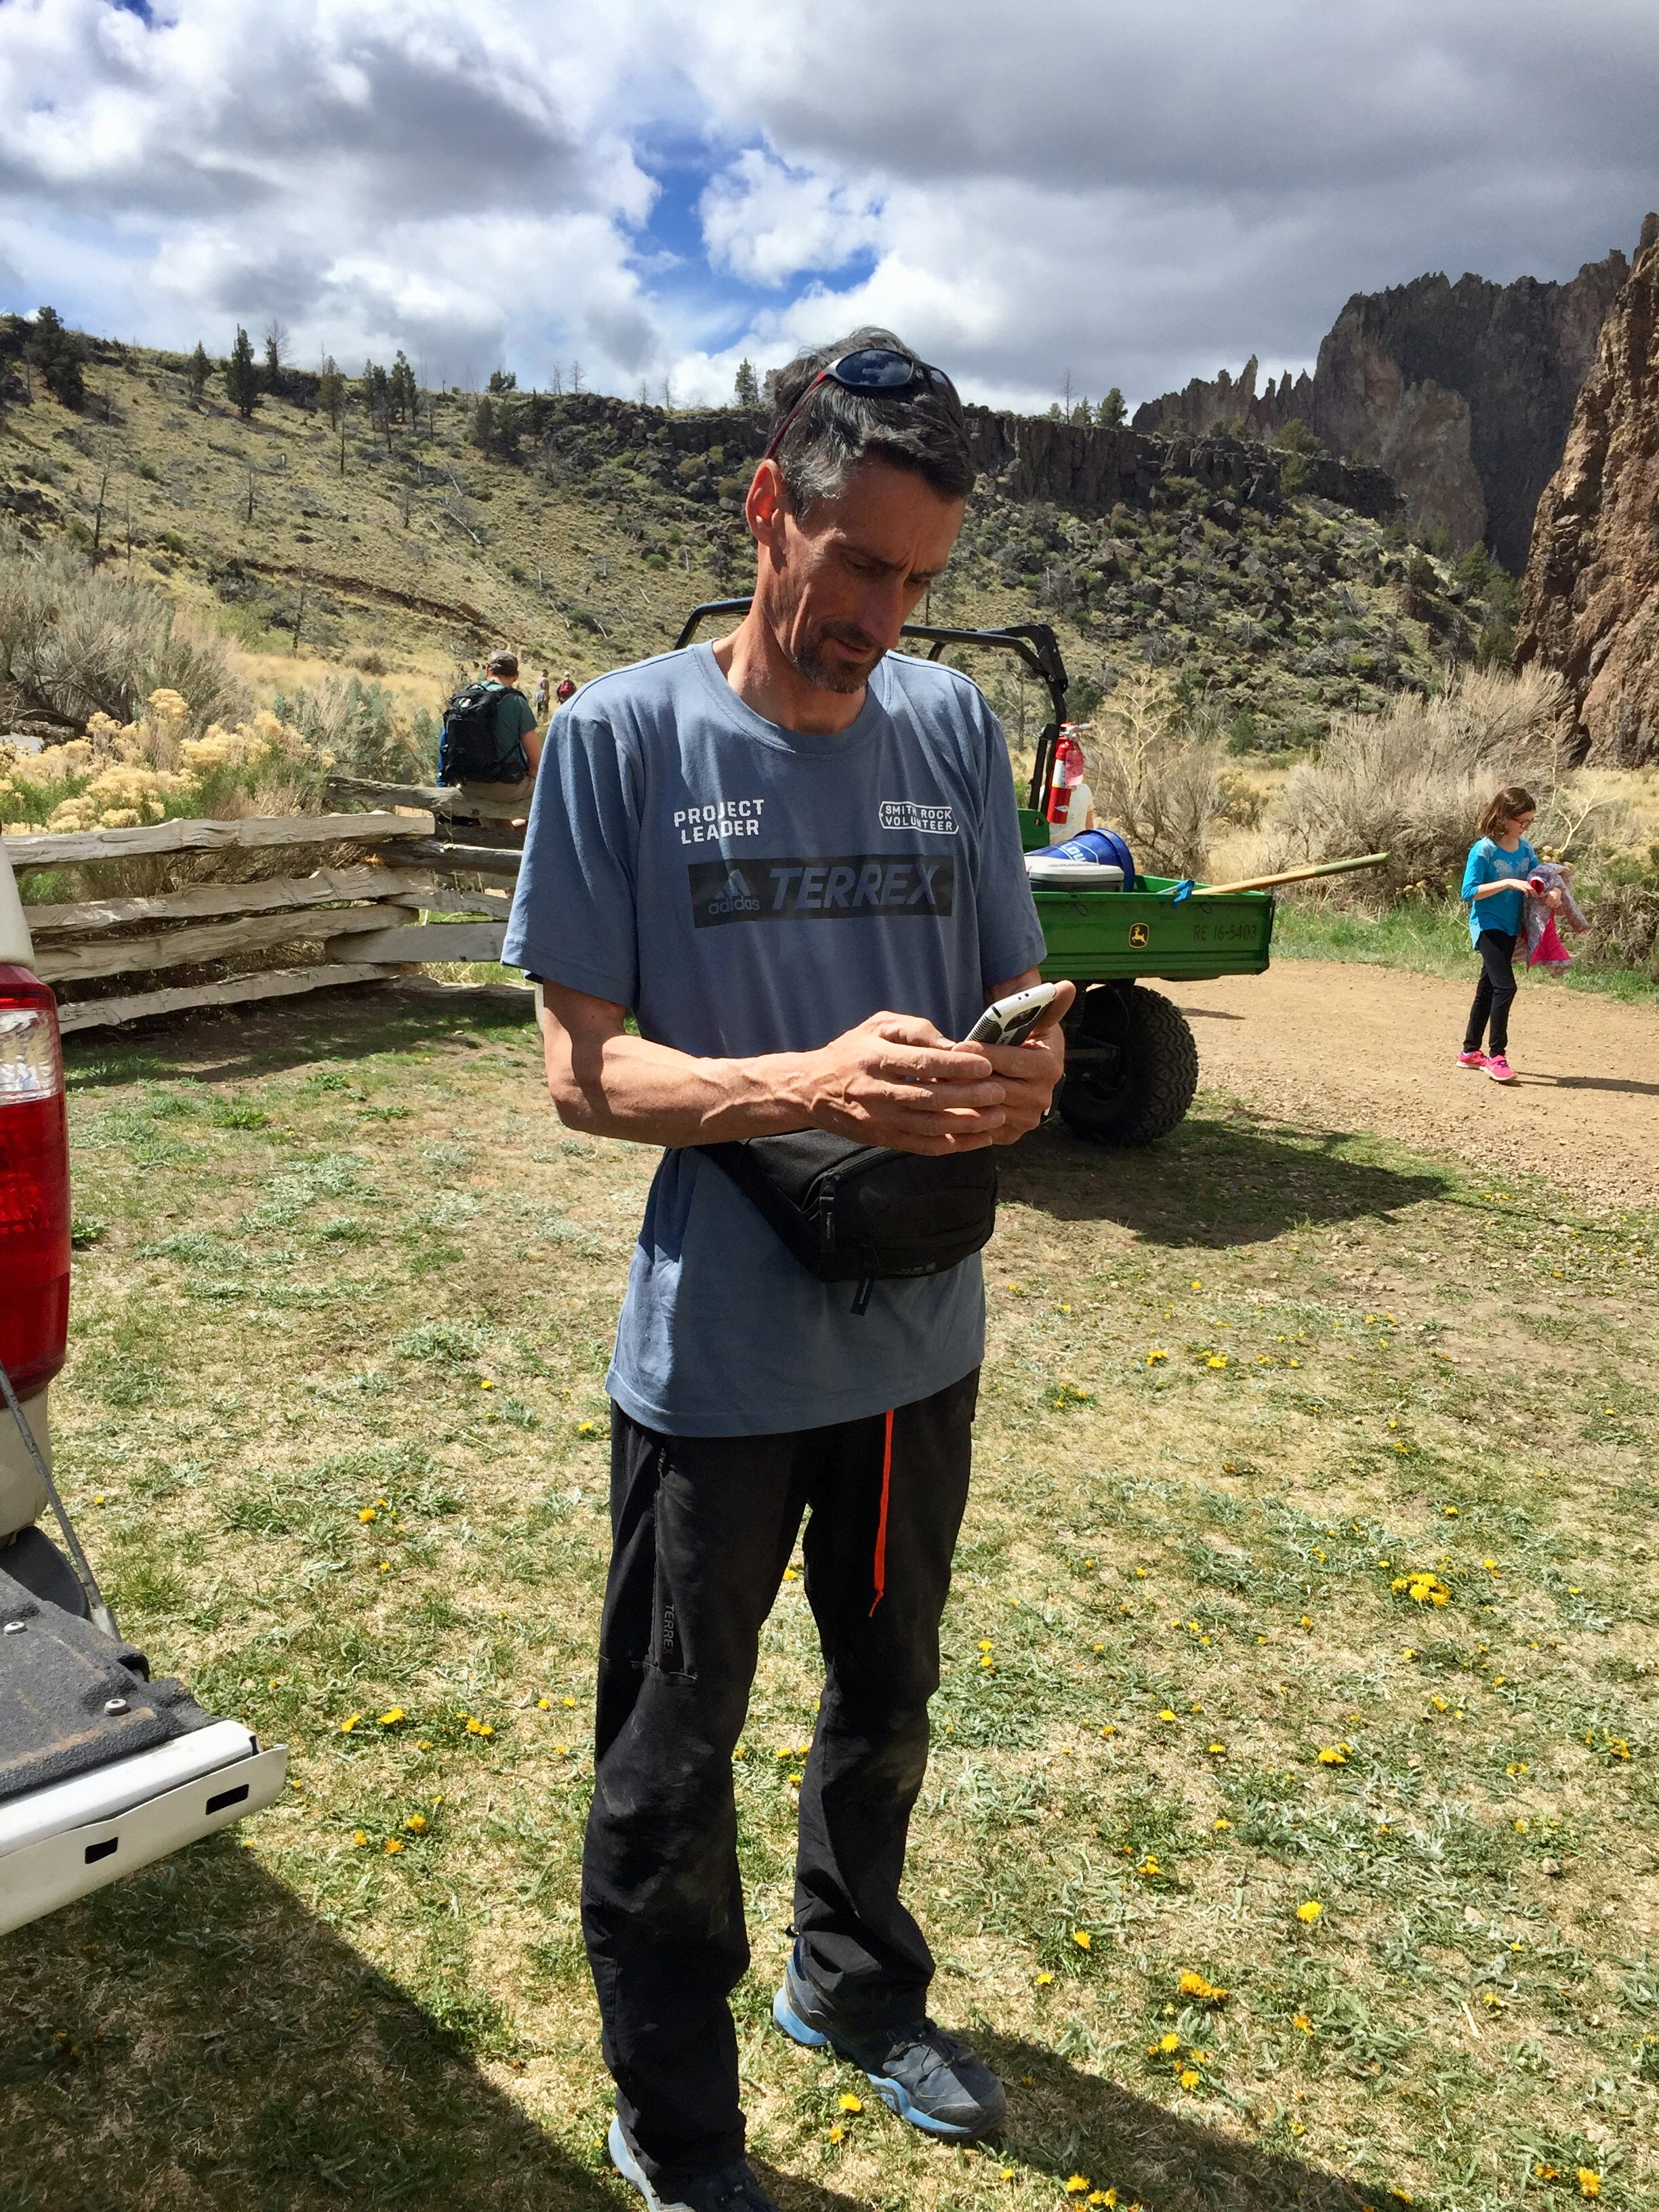 The brains behind the brawn. - While rock climbers only make up a quarter of the annual visitation of 780,000+ visitors to Smith Rock State Park, they do the bulk of its restoration each spring, supplementing the efforts of a limited park staff.Organized each year by a small local non-profit started over 25 years ago called The Smith Rock Group (SRG), they work with park management months in advance of the event to identify projects.Each year's materials are bought and paid for by donations to SRG and money raised by raffles and auctions at the end of the day from donations from area sponsors.  Pictured here is Ian Caldwell, the Smith Rock Group's Projects Manager